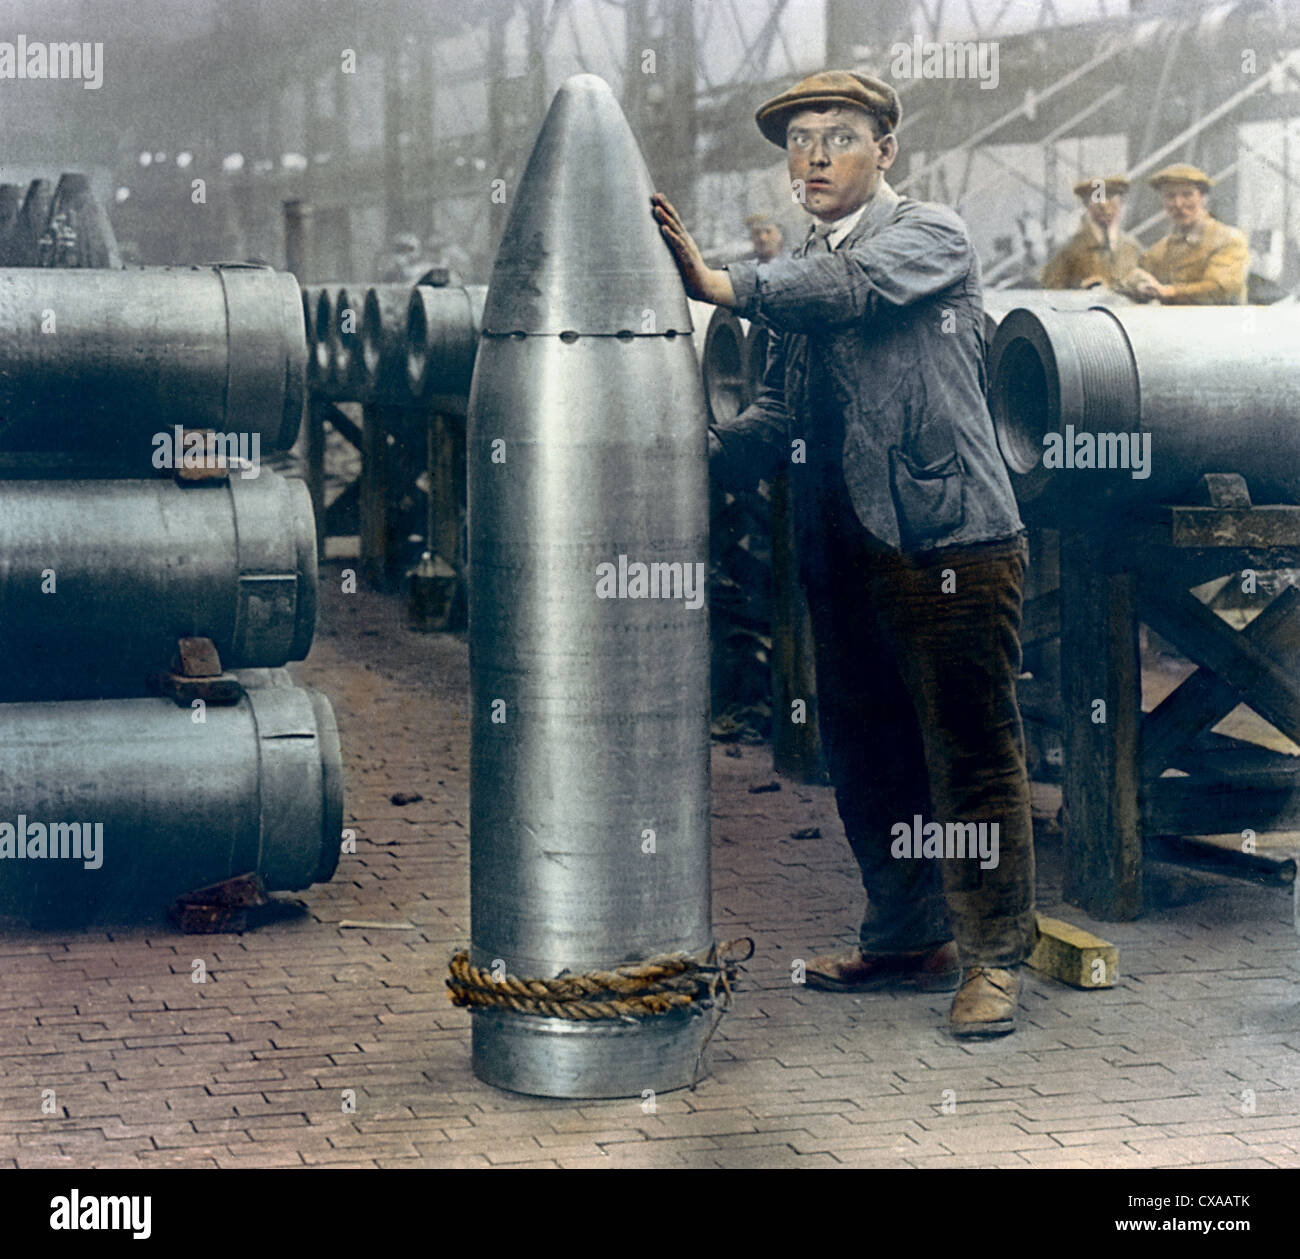 Fabrique de munitions, Angleterre, 1918 Photo Stock